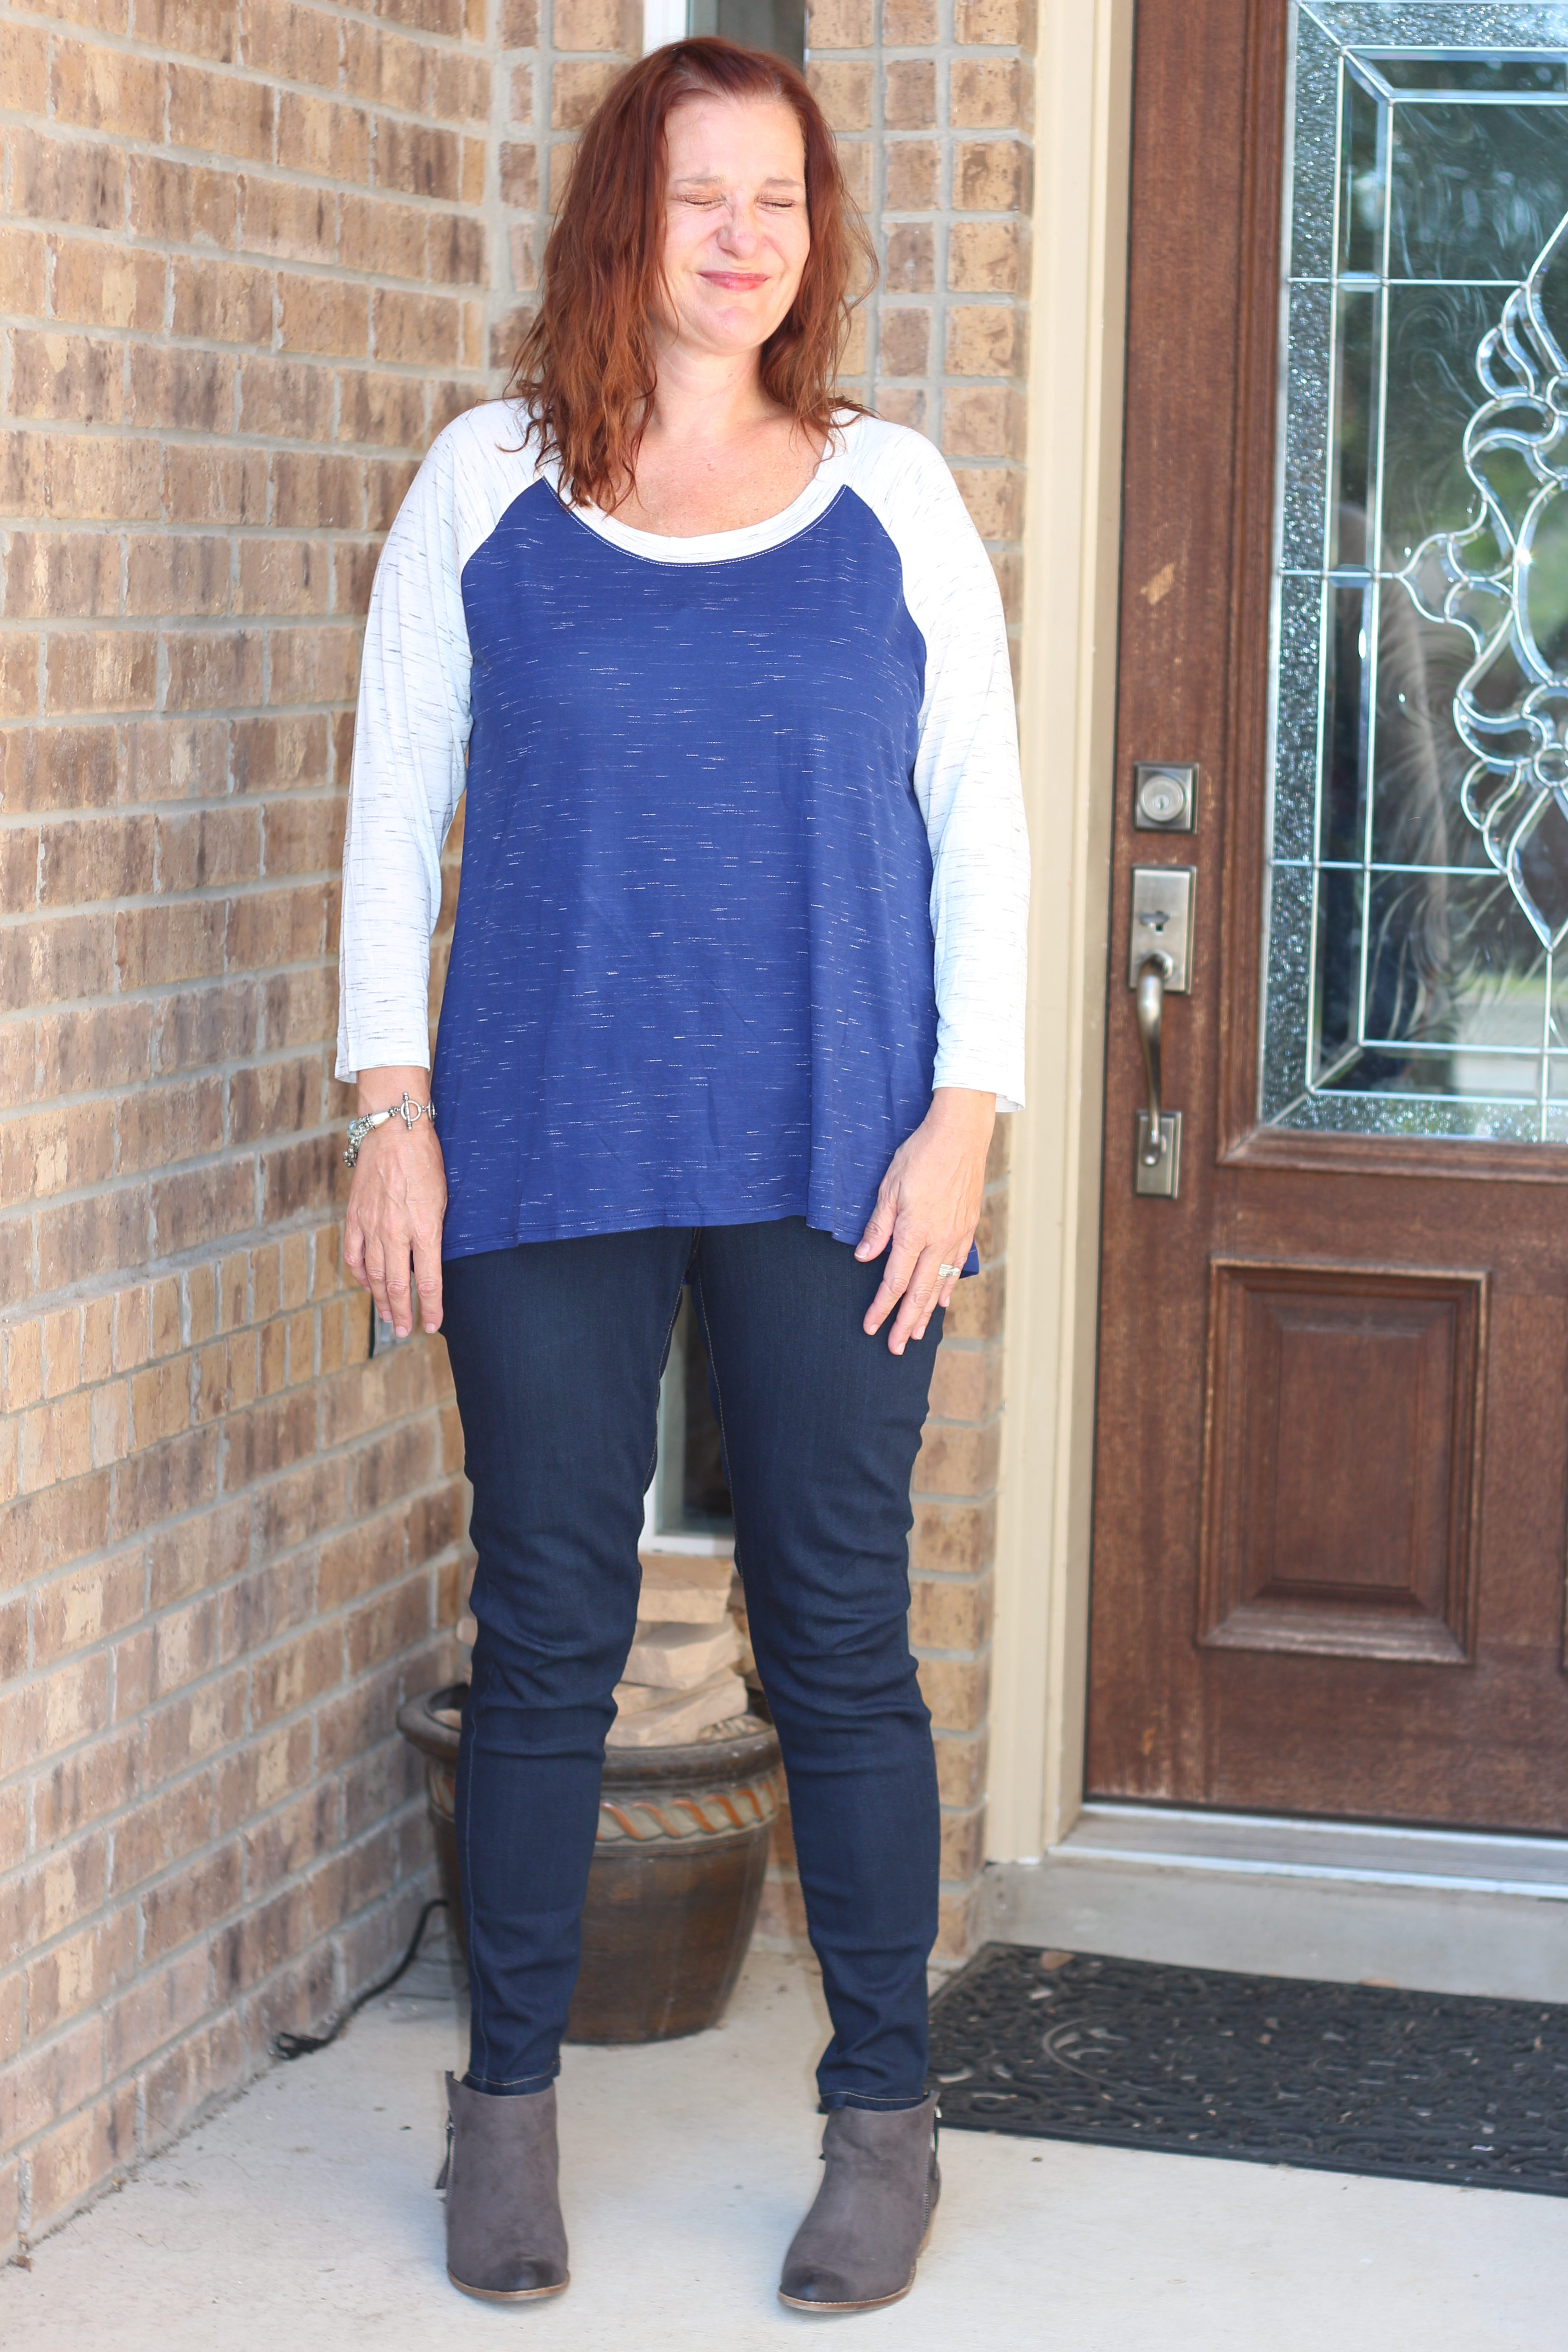 Review of the Stitch Fix box that I didn't really like|Ripped Jeans and Bifocals